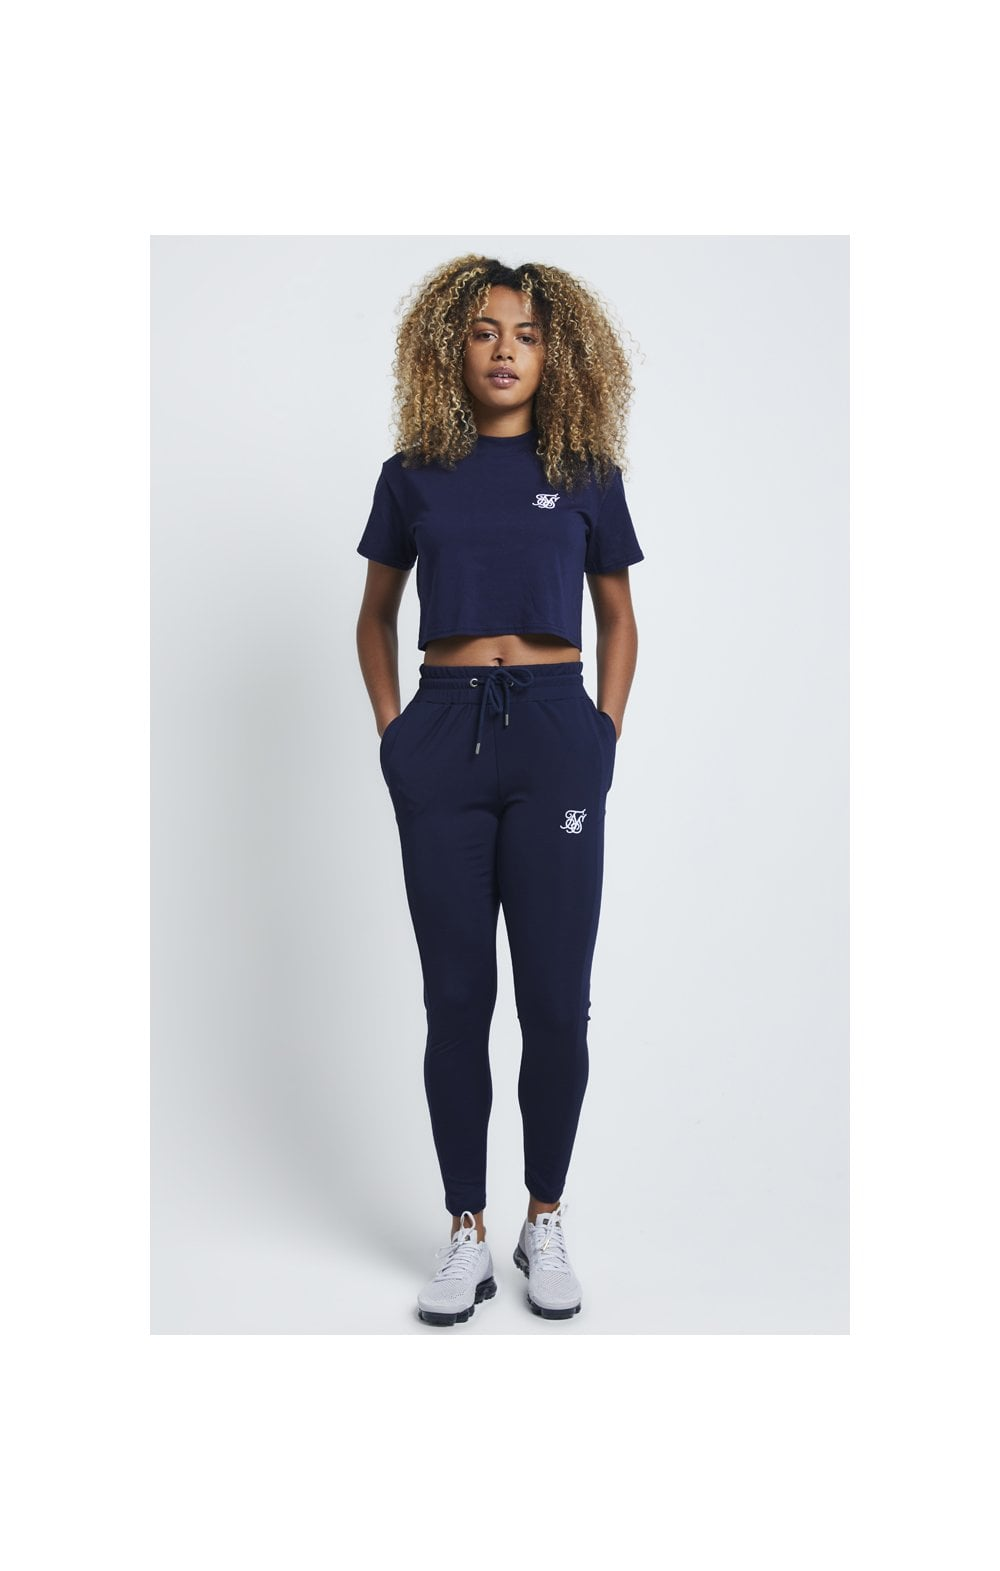 Load image into Gallery viewer, SikSilk Retro Box Fit Crop Tee – Navy (4)